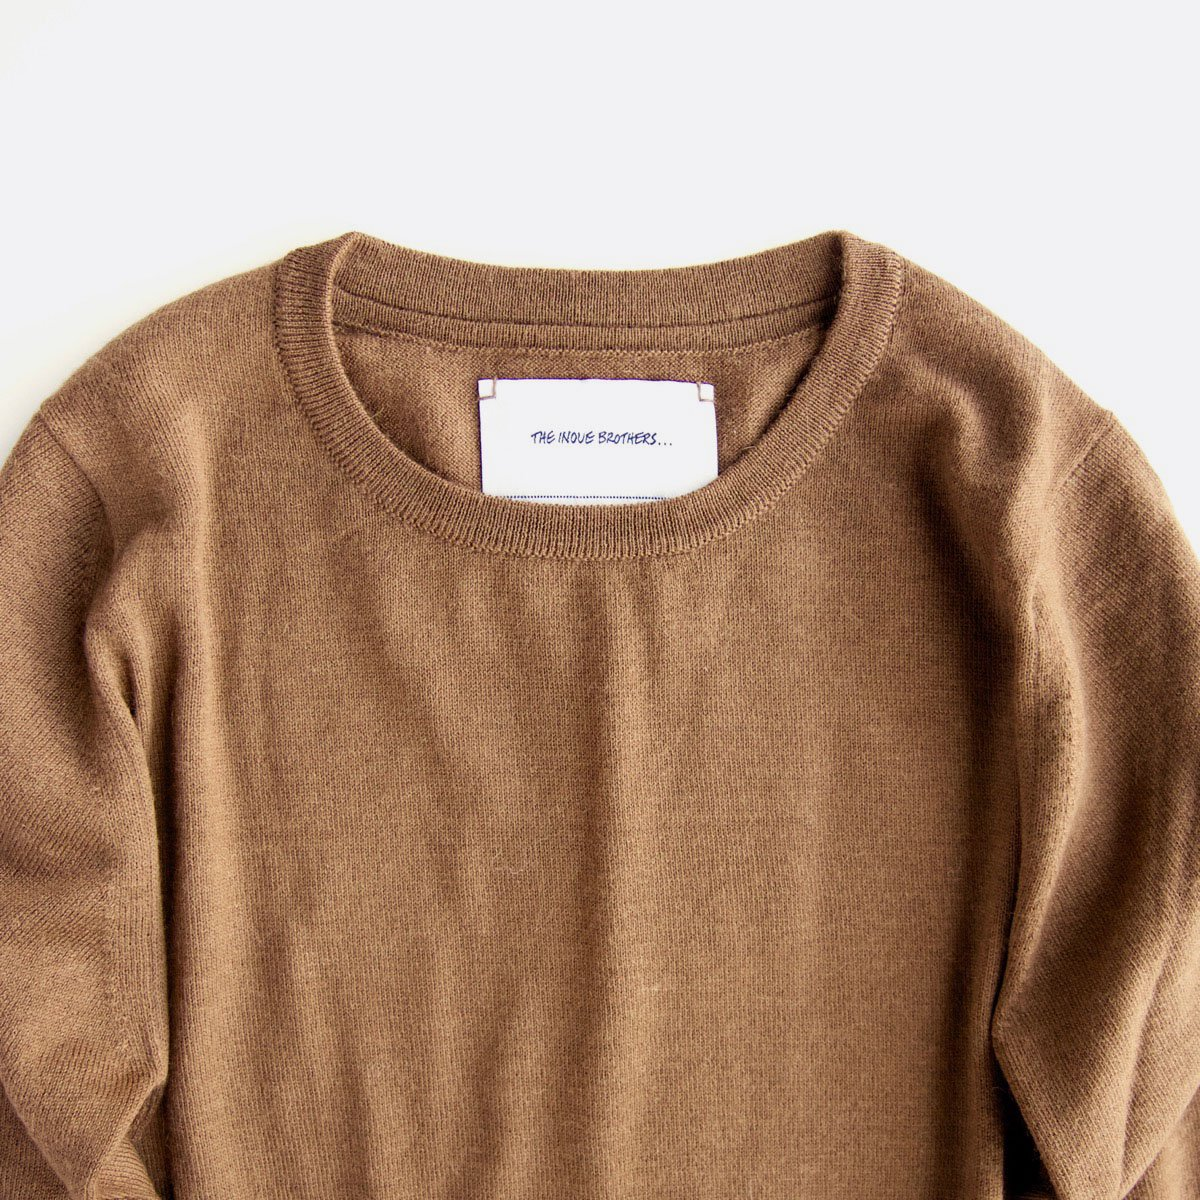 THE INOUE BROTHERS…  Crew Neck Pullover (Camel)3